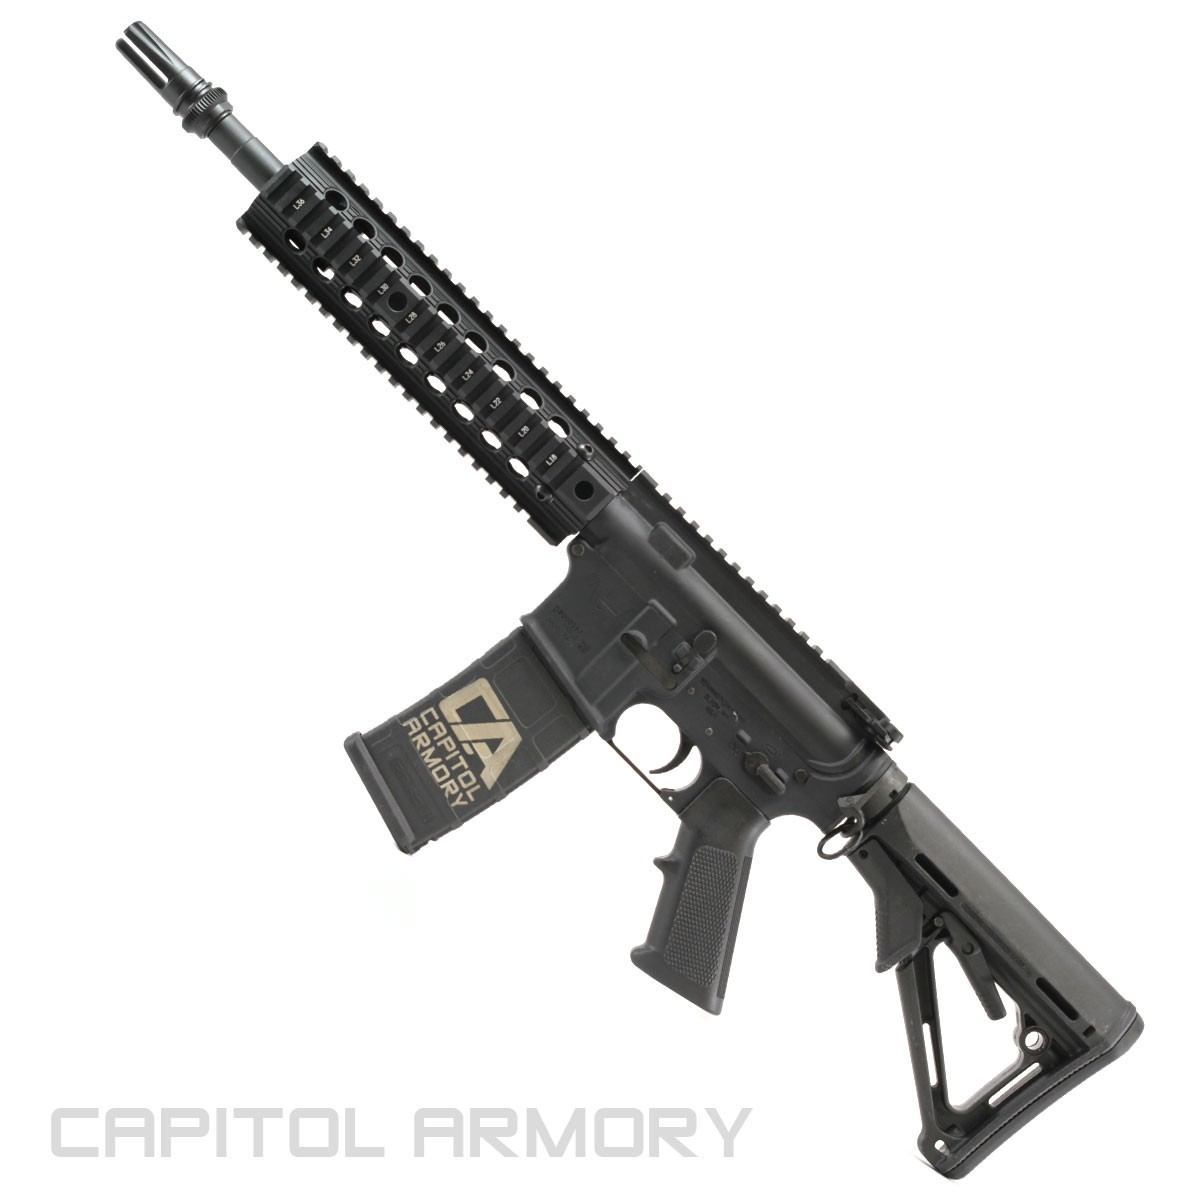 Remington Defense R4 SBR